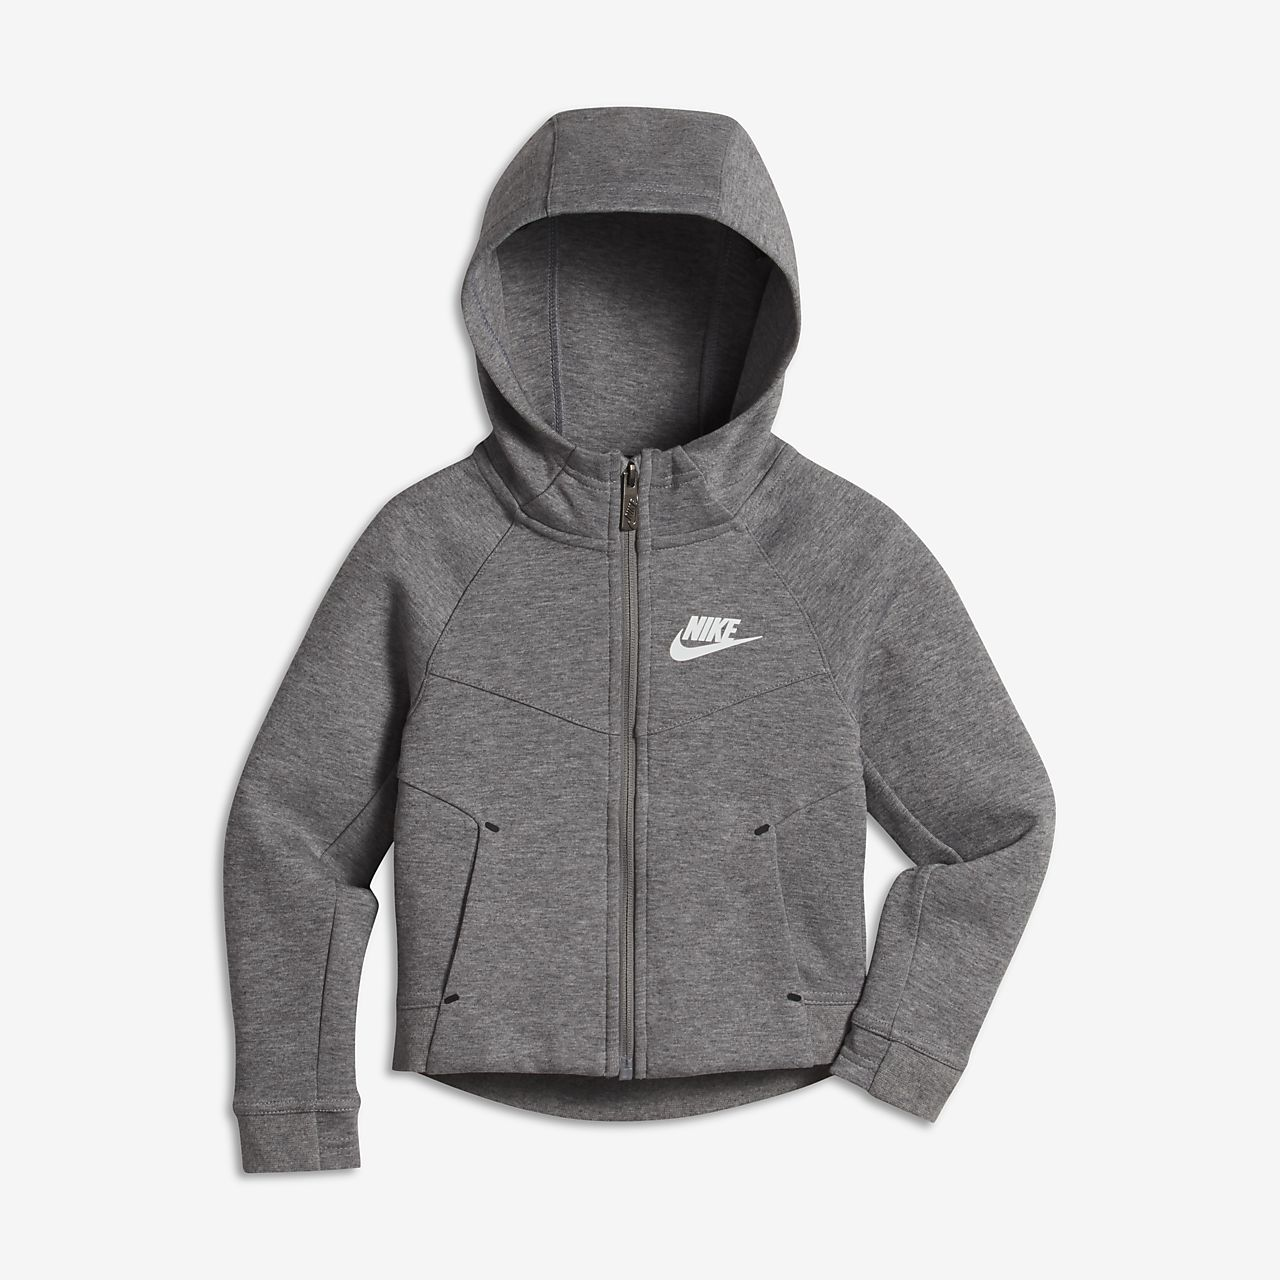 Nike just Doe Ittoku love pullover parka Nike JDI Club Pullover Hoodie gray